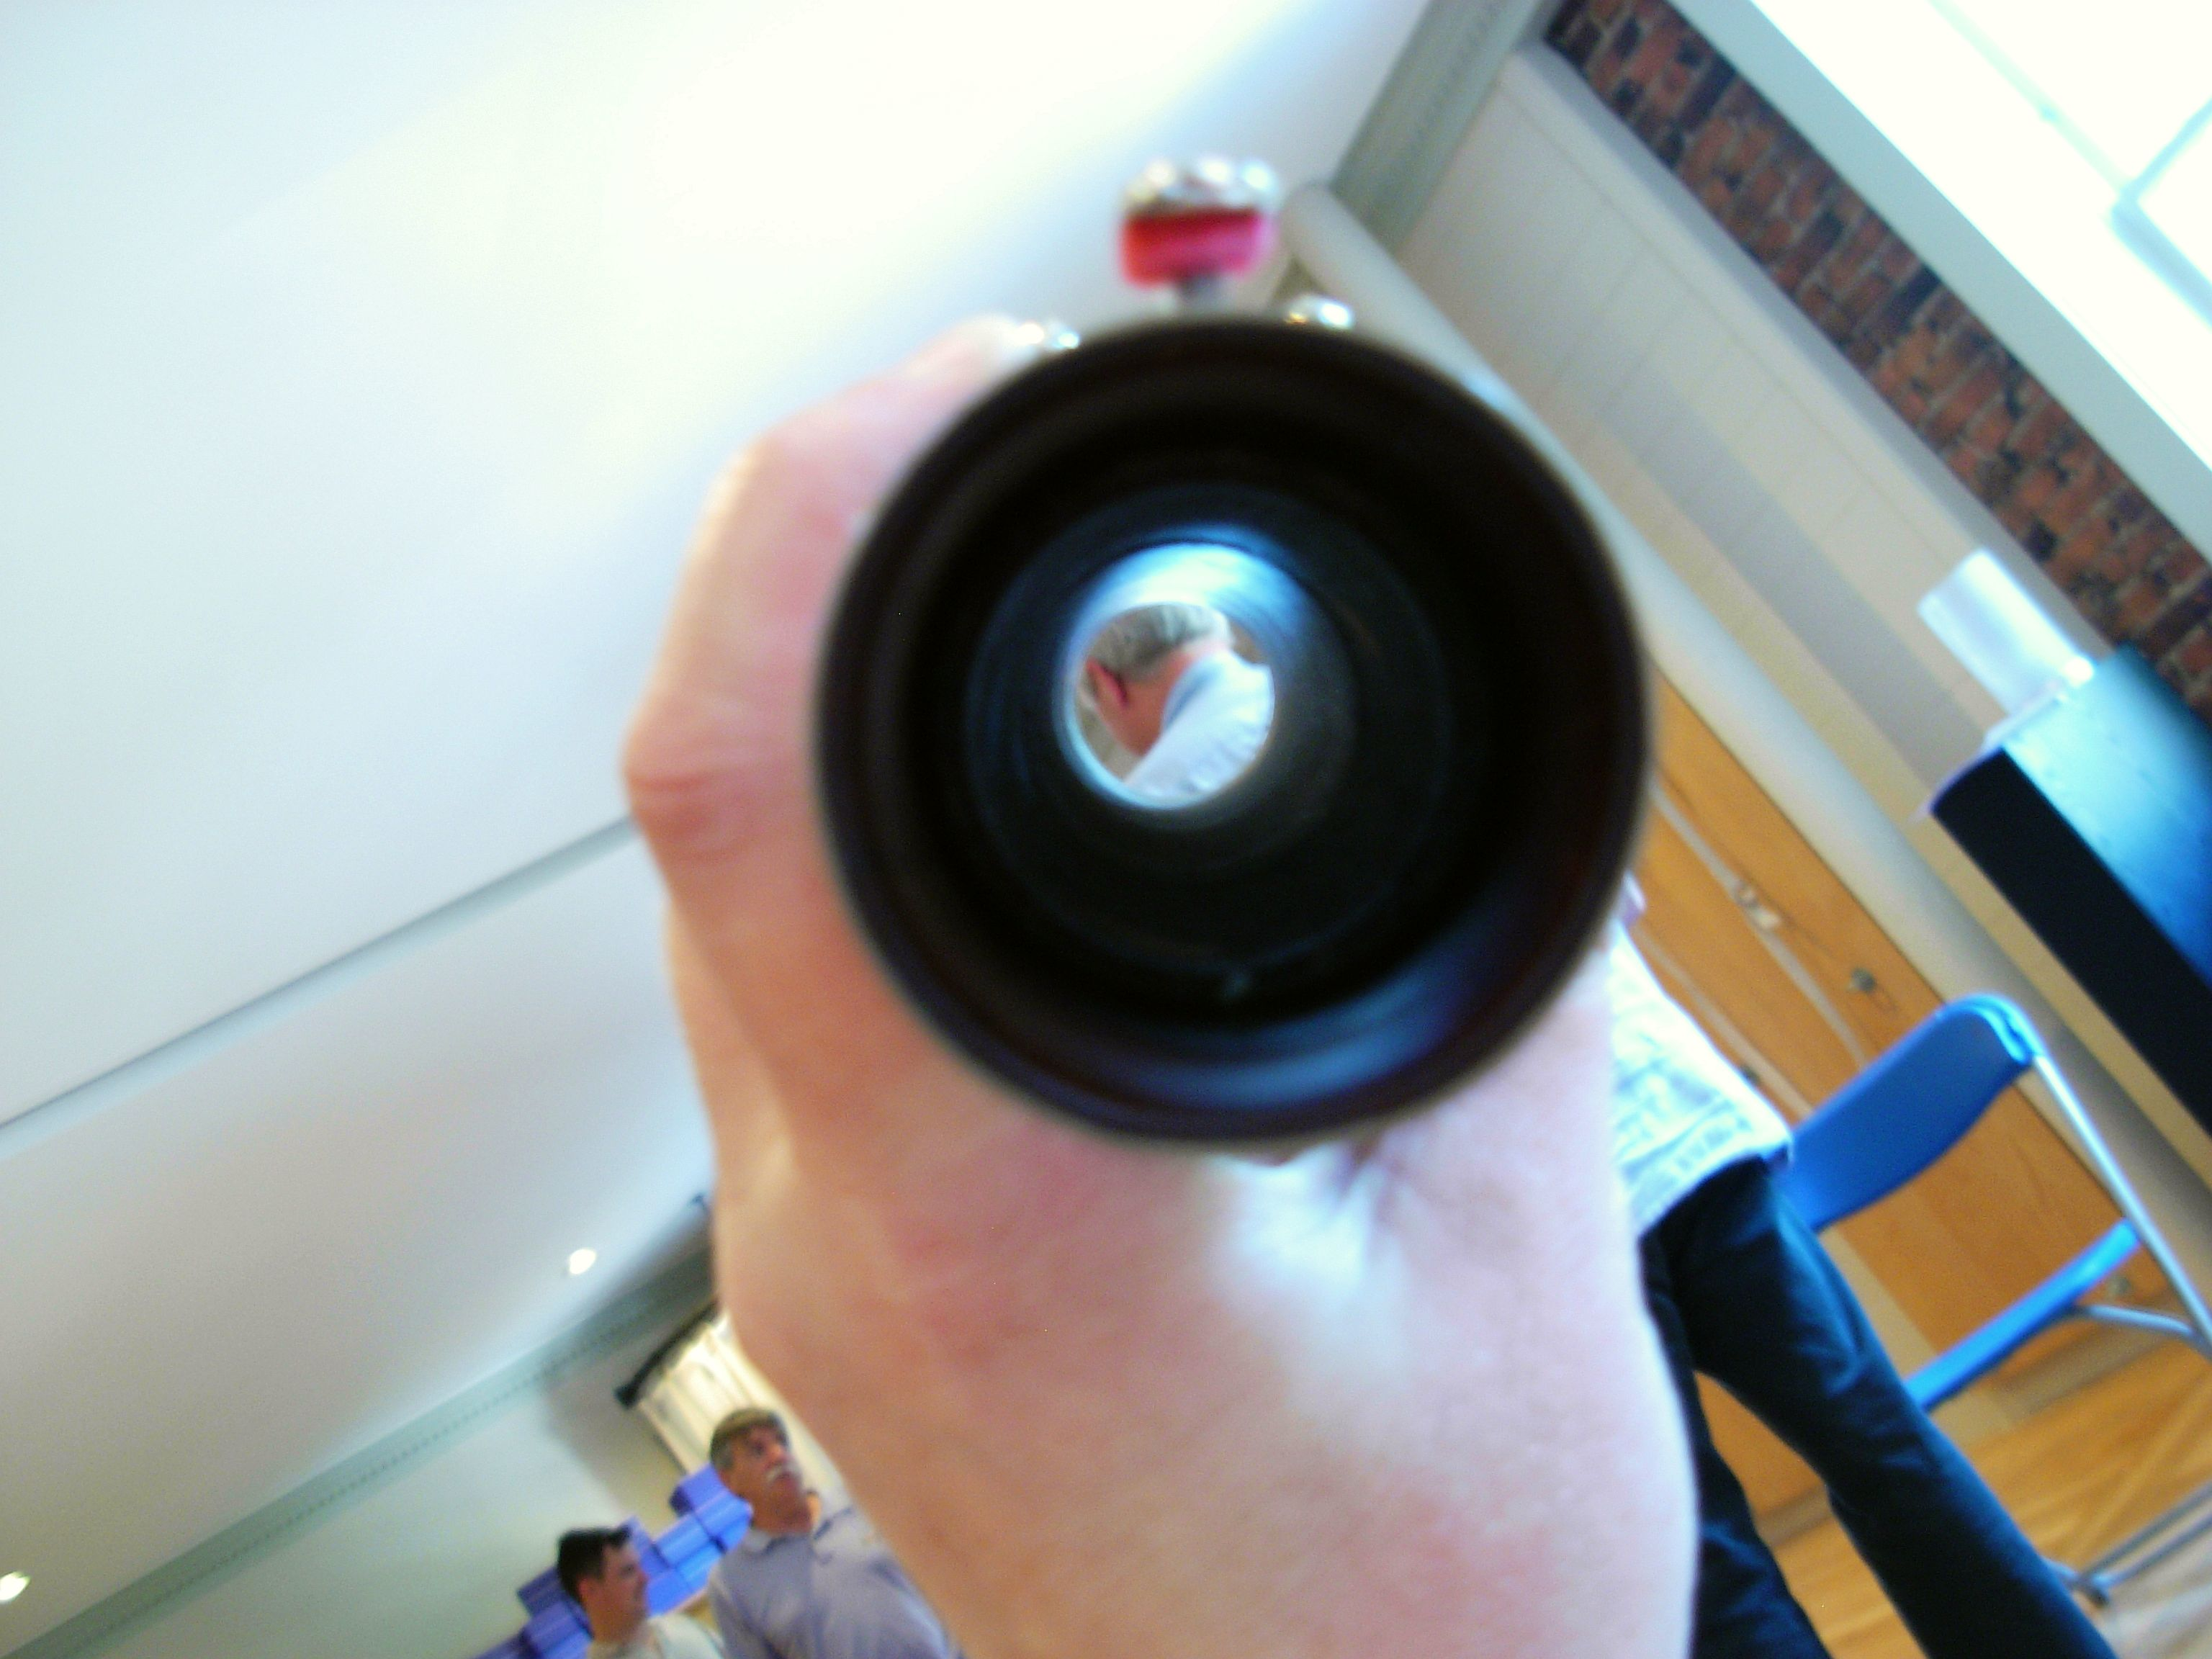 8/3/09 - Andrew Schwartz, as viewed through a segment of his own bassoon.